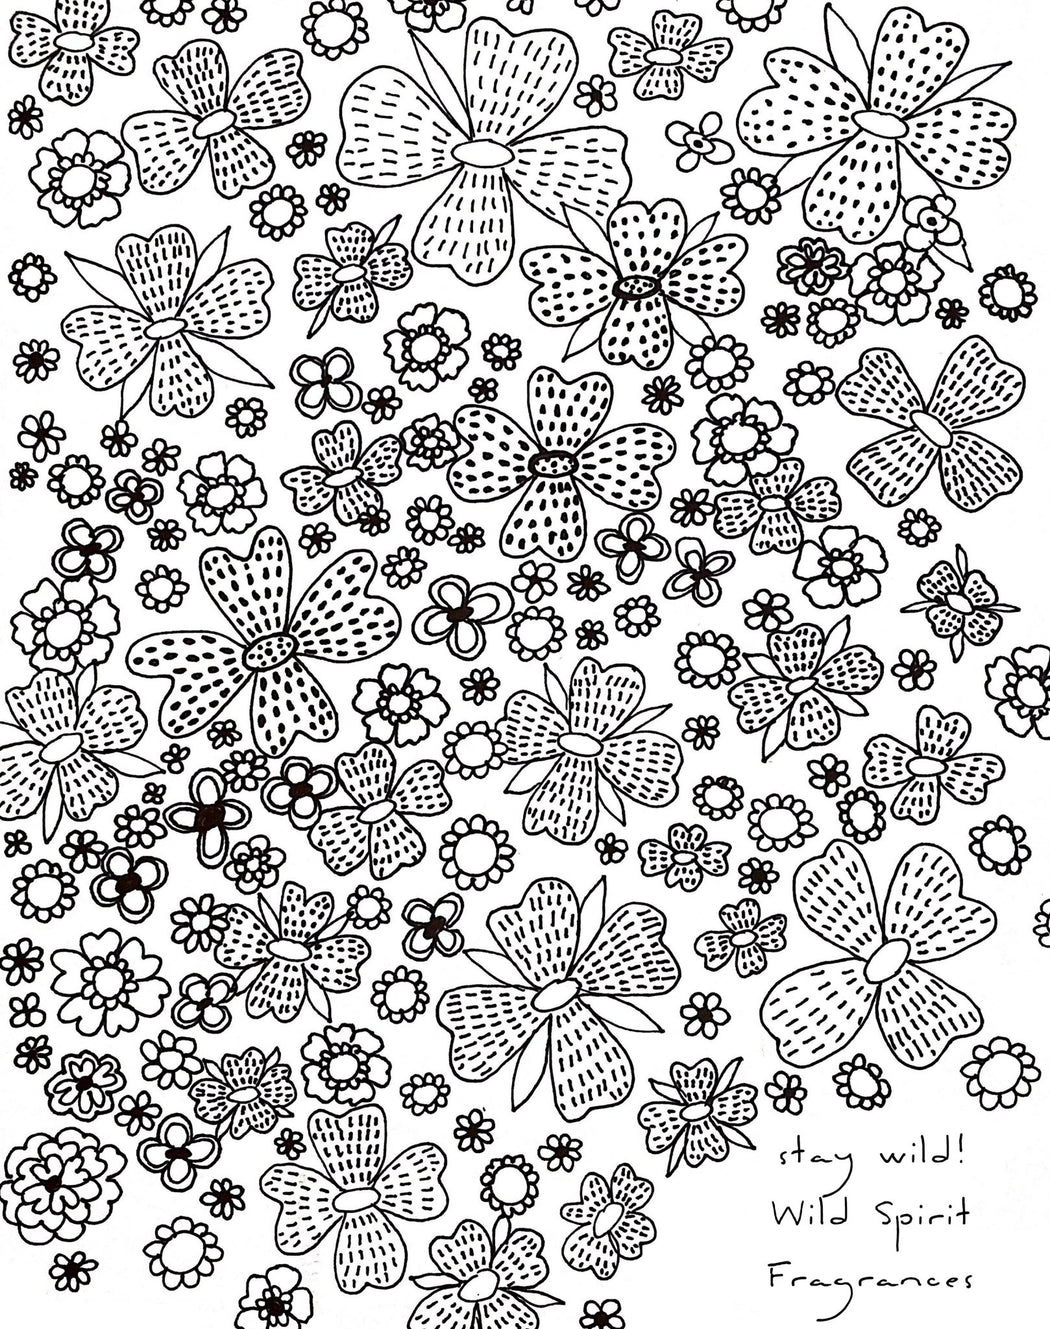 Coloring Page, Printable Instant Download, Flower Power - Wild Spirit